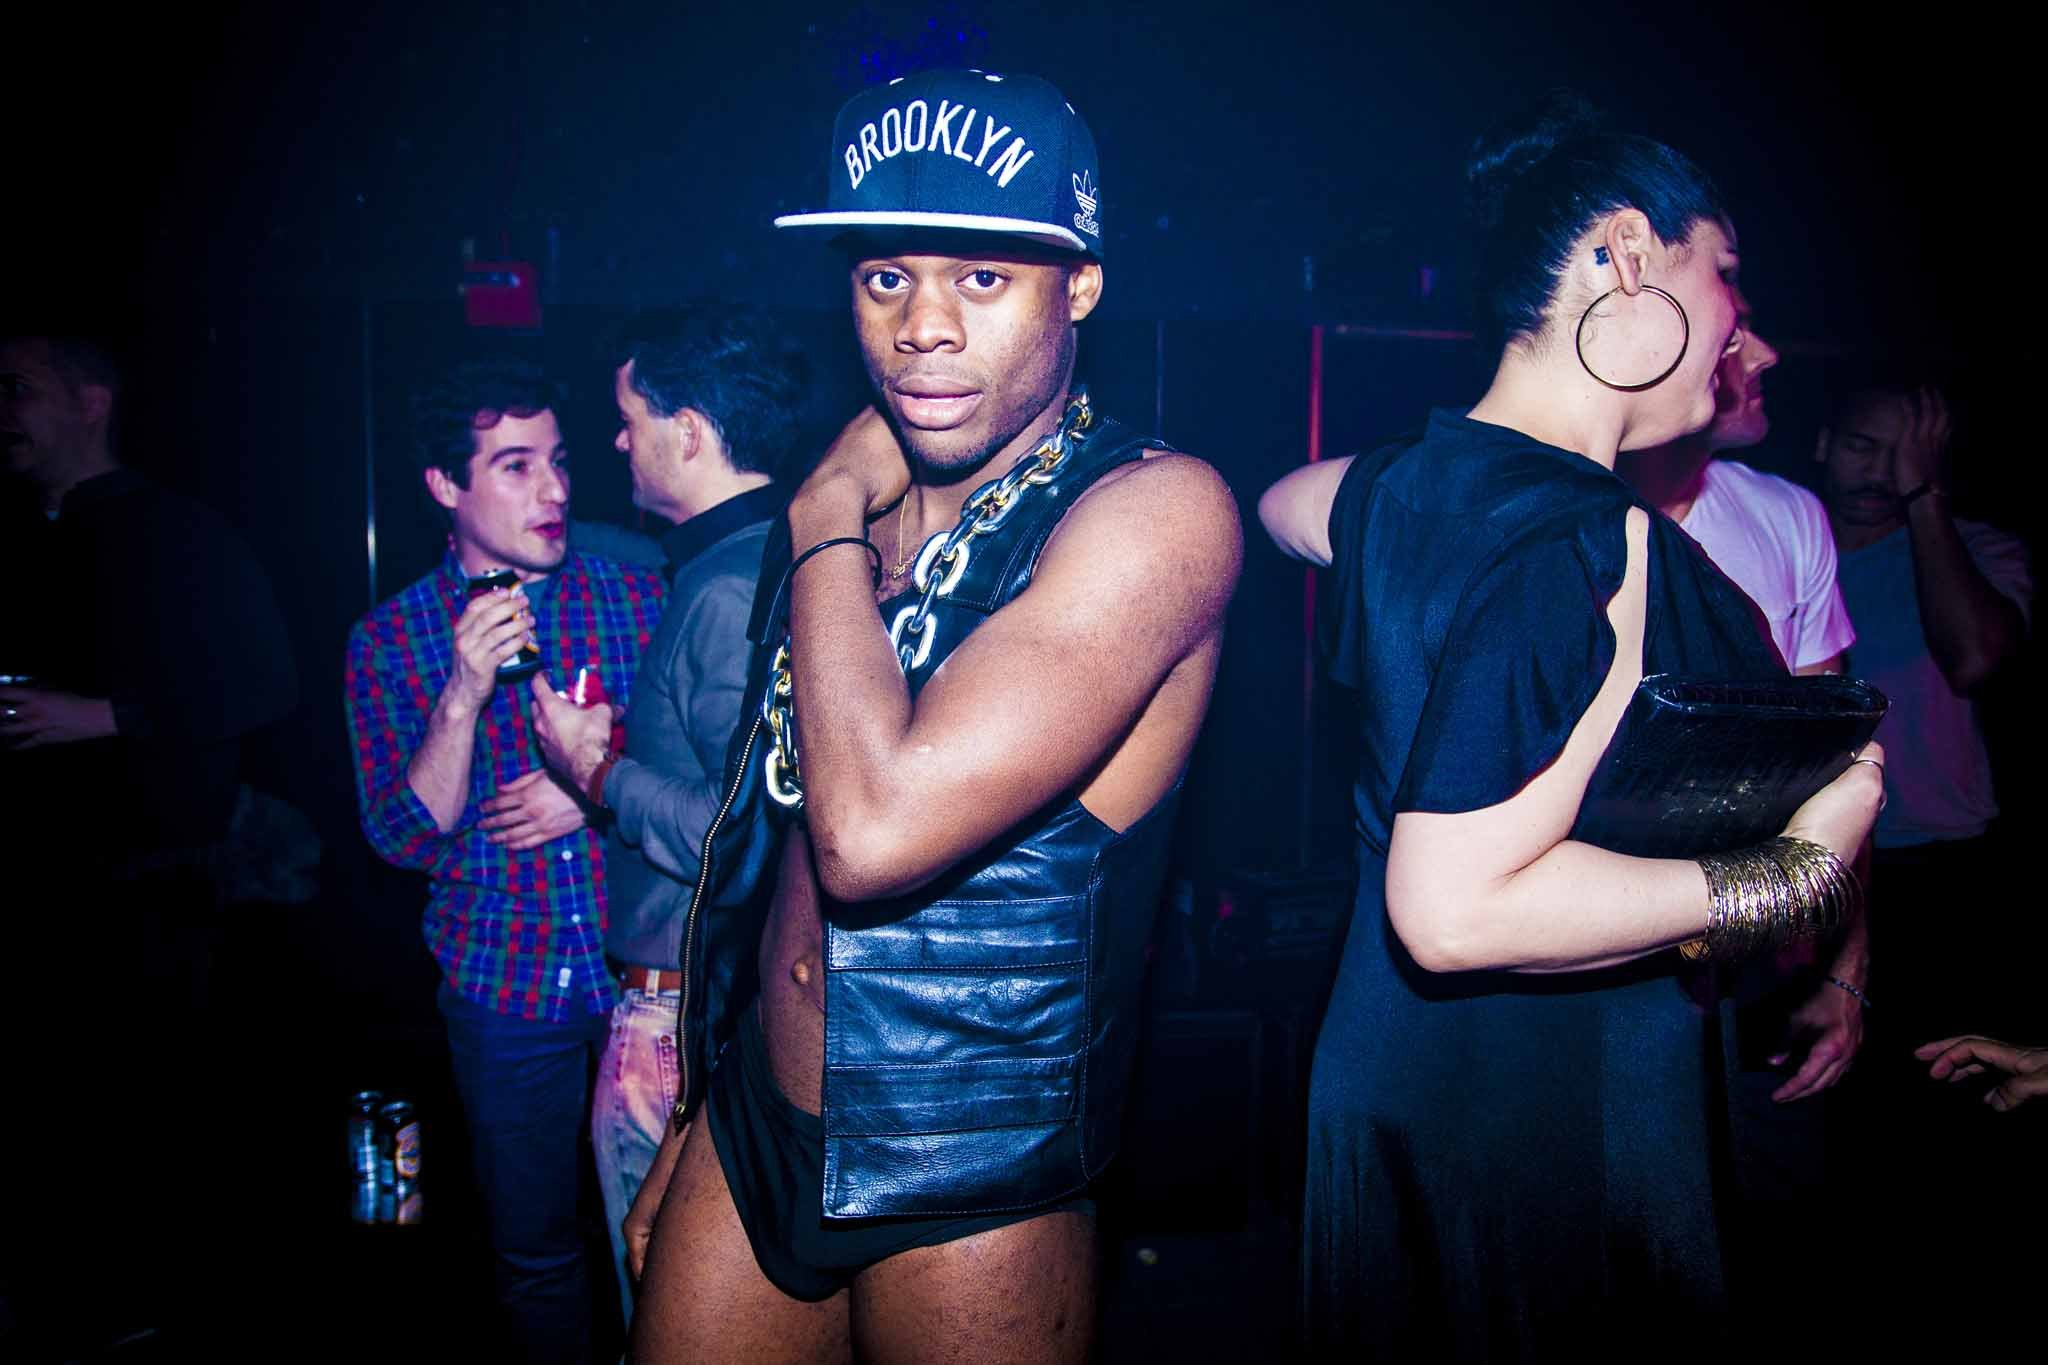 Best gay nightlife in New York City